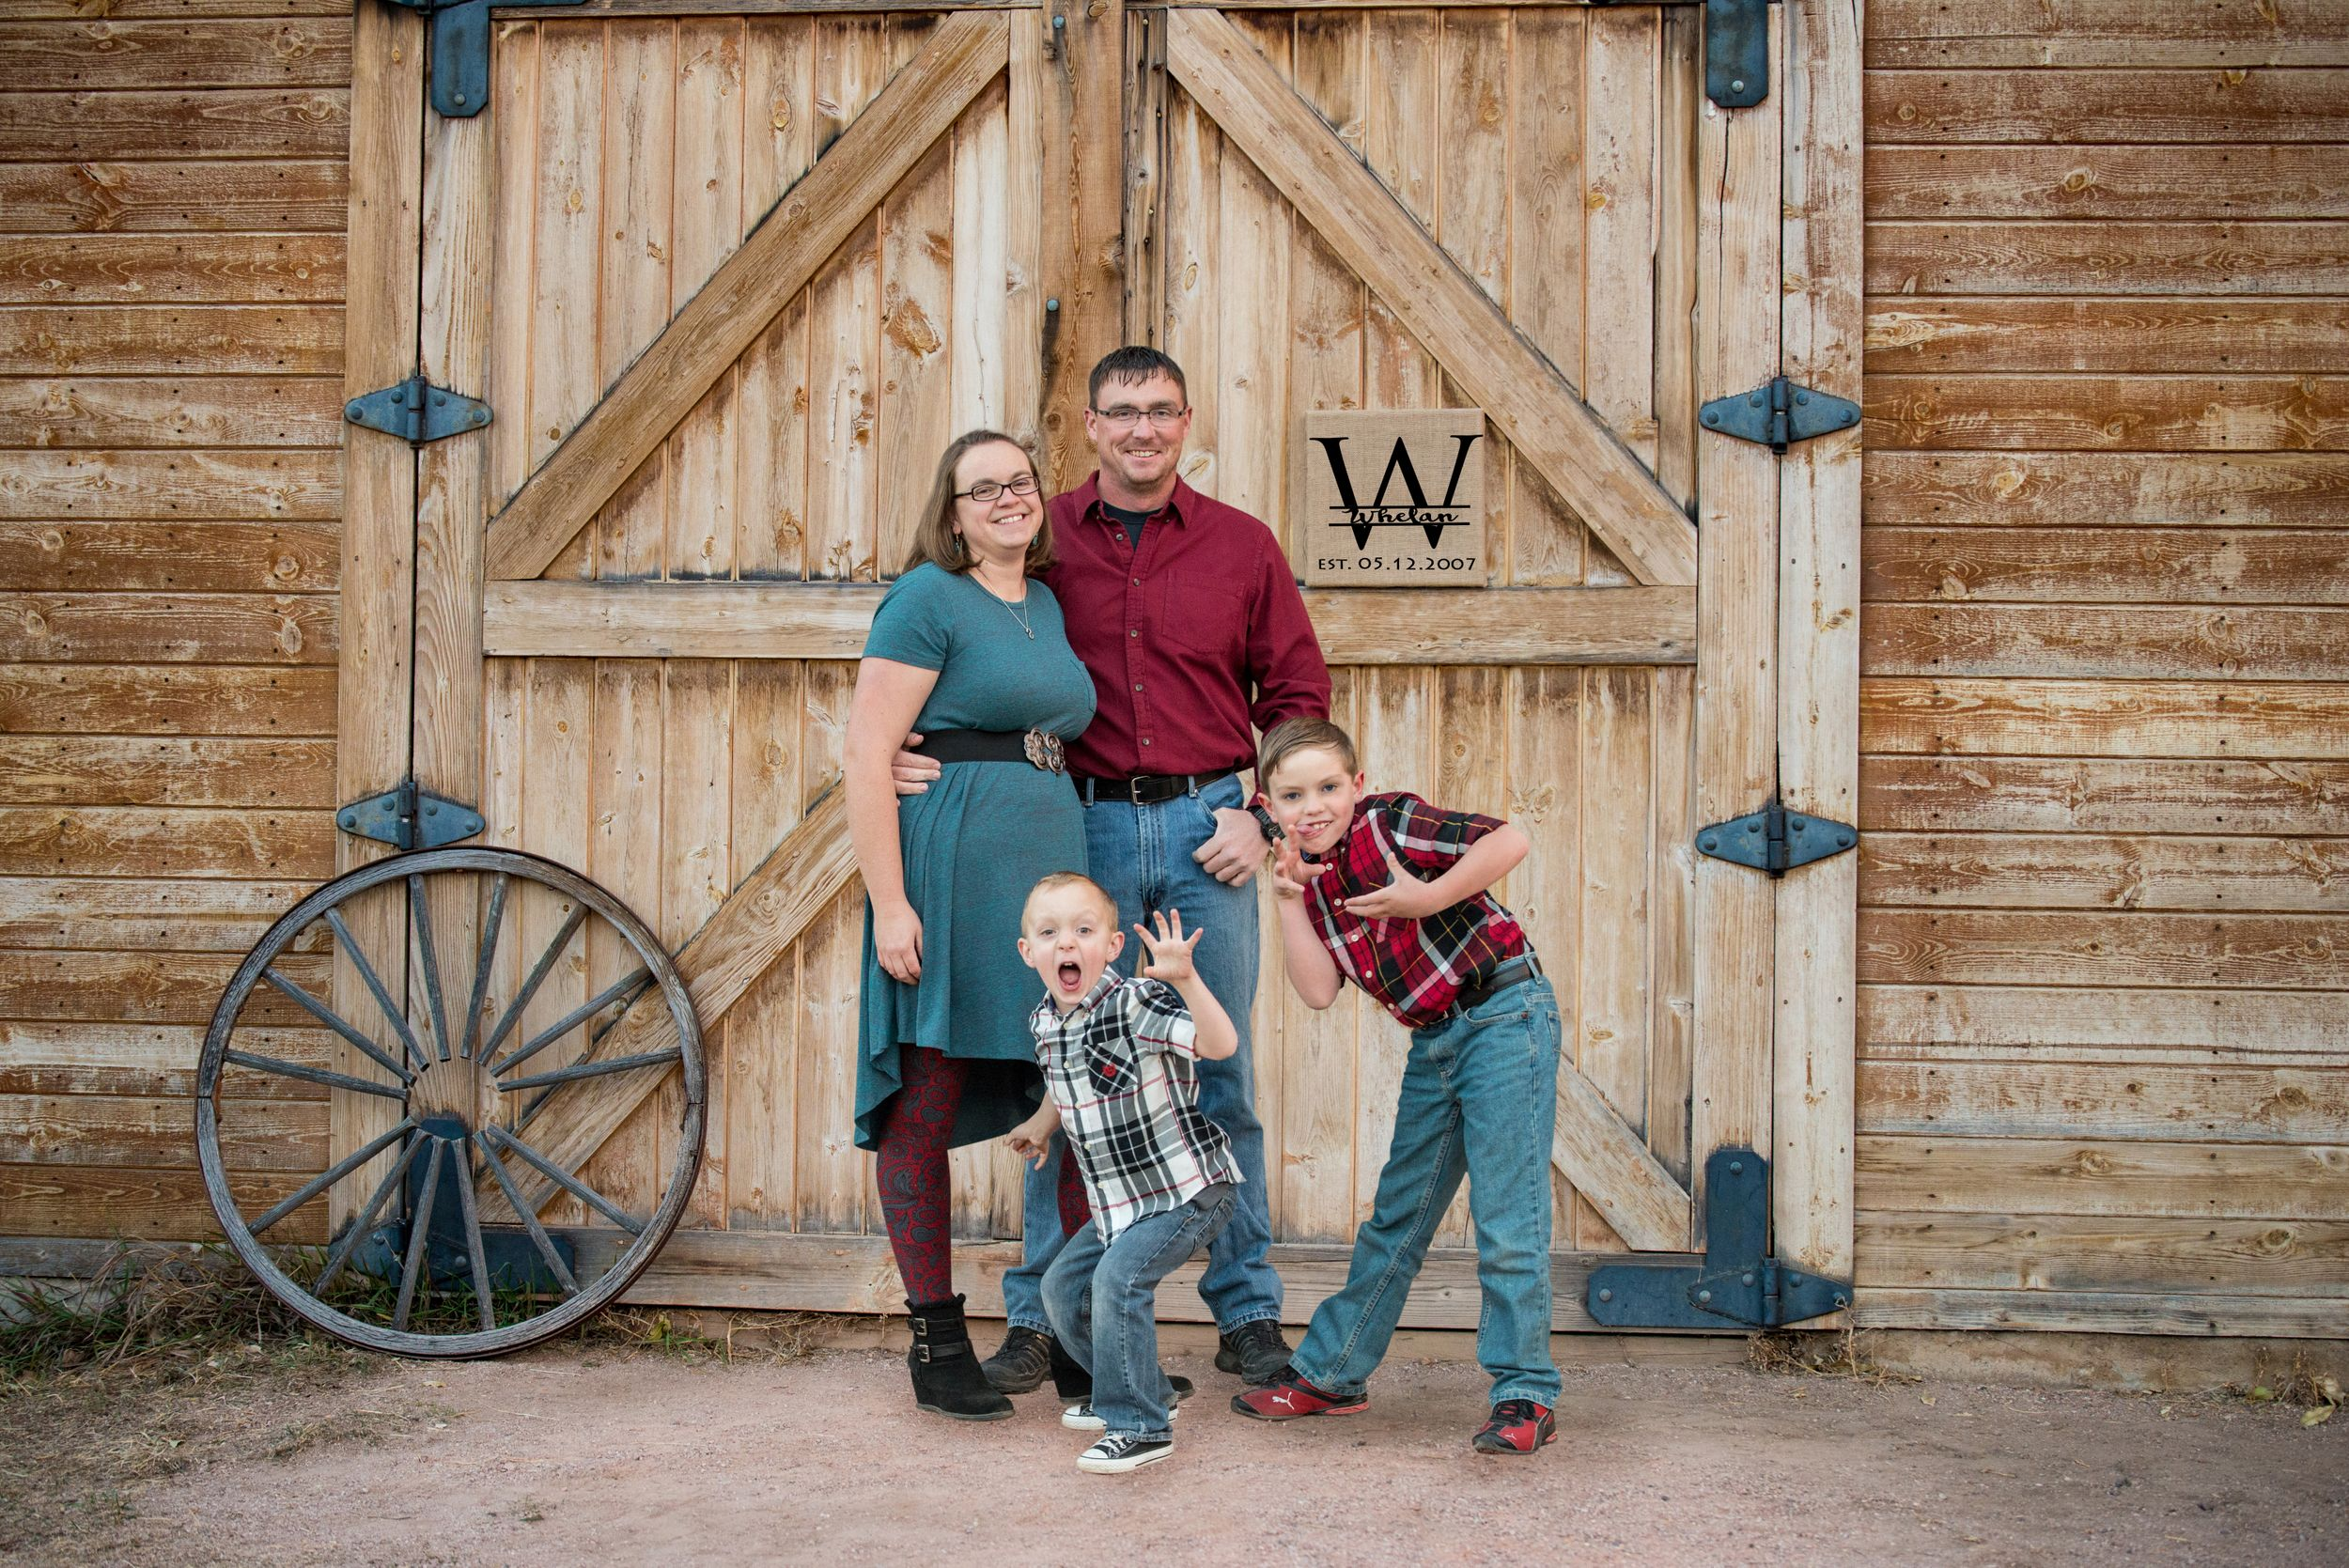 Family of 4 getting family photos in front of the beautiful barn at Rock Ledge Ranch in Colorado Springs,CO